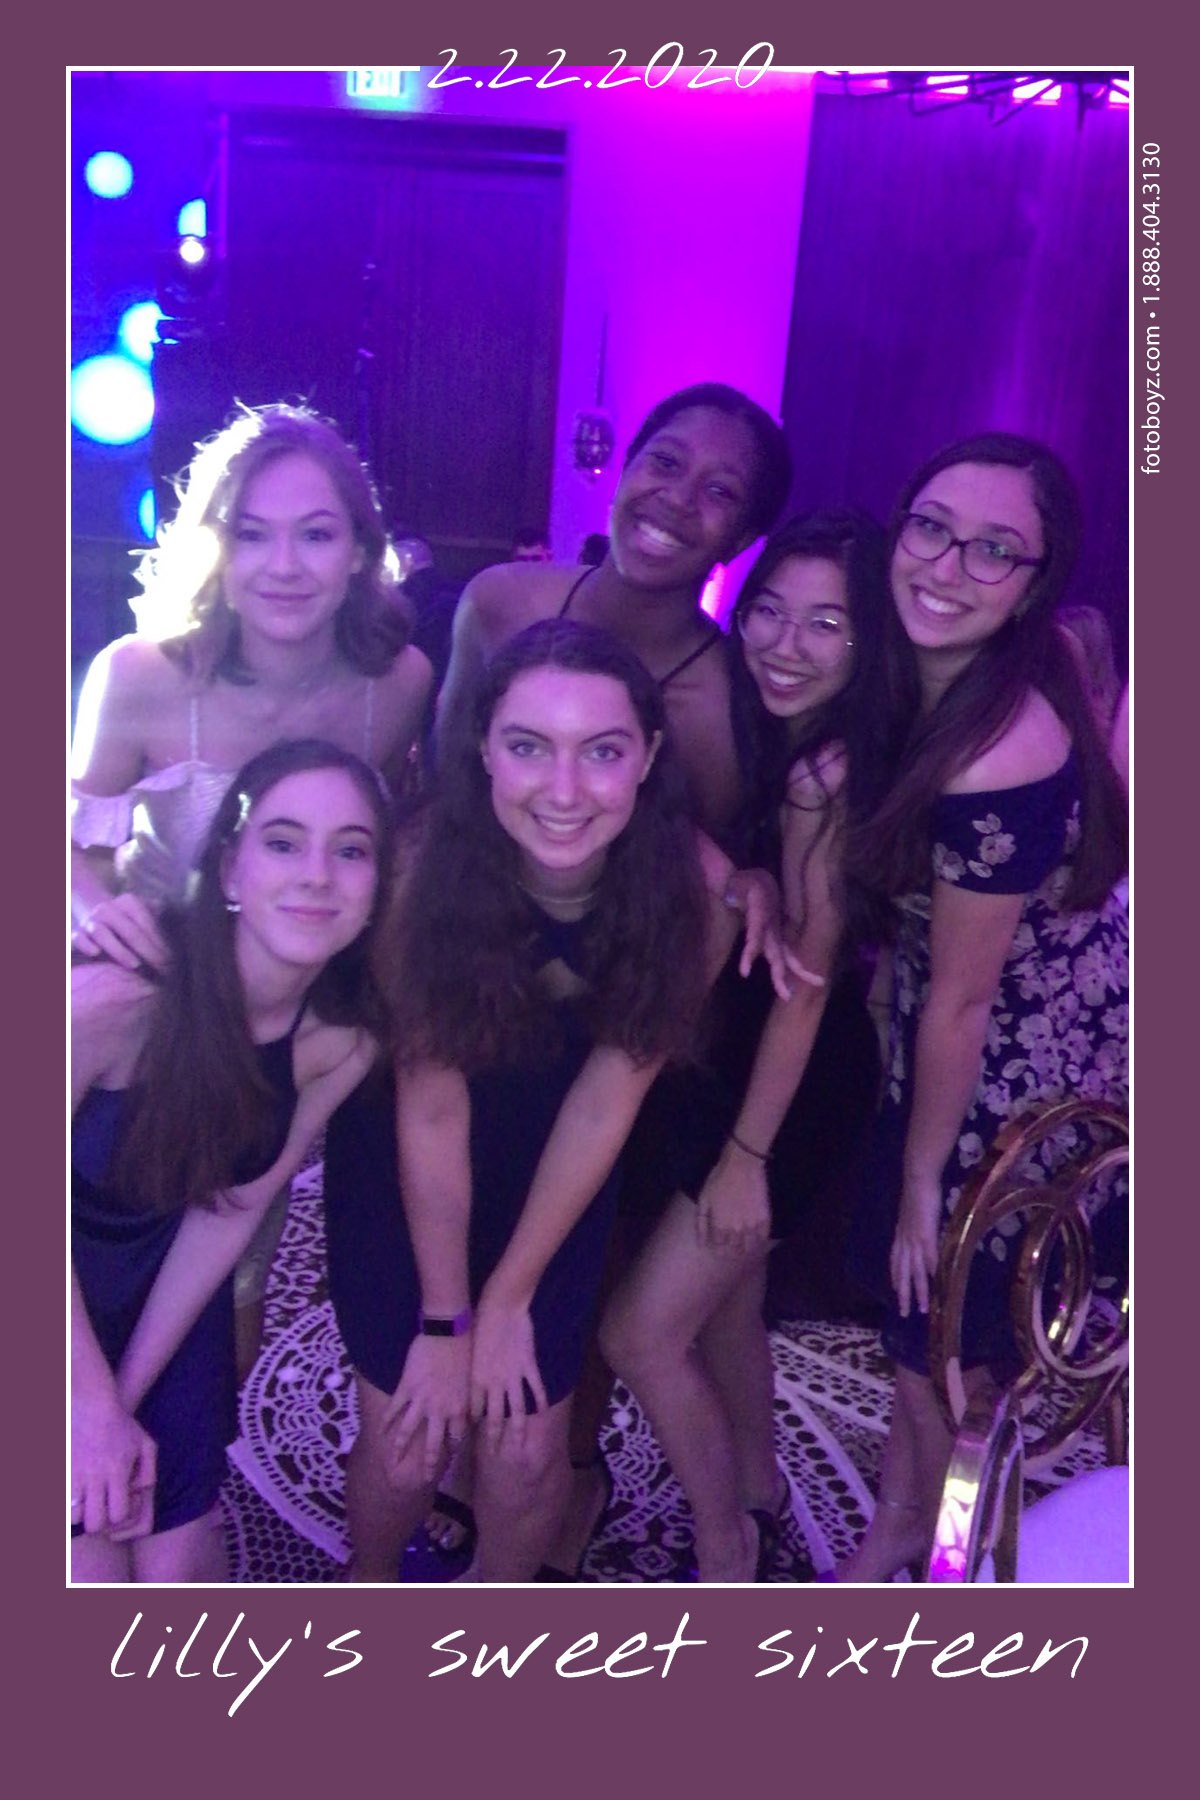 Lilly's Sweet 16 Selfie Mirror Featured Image